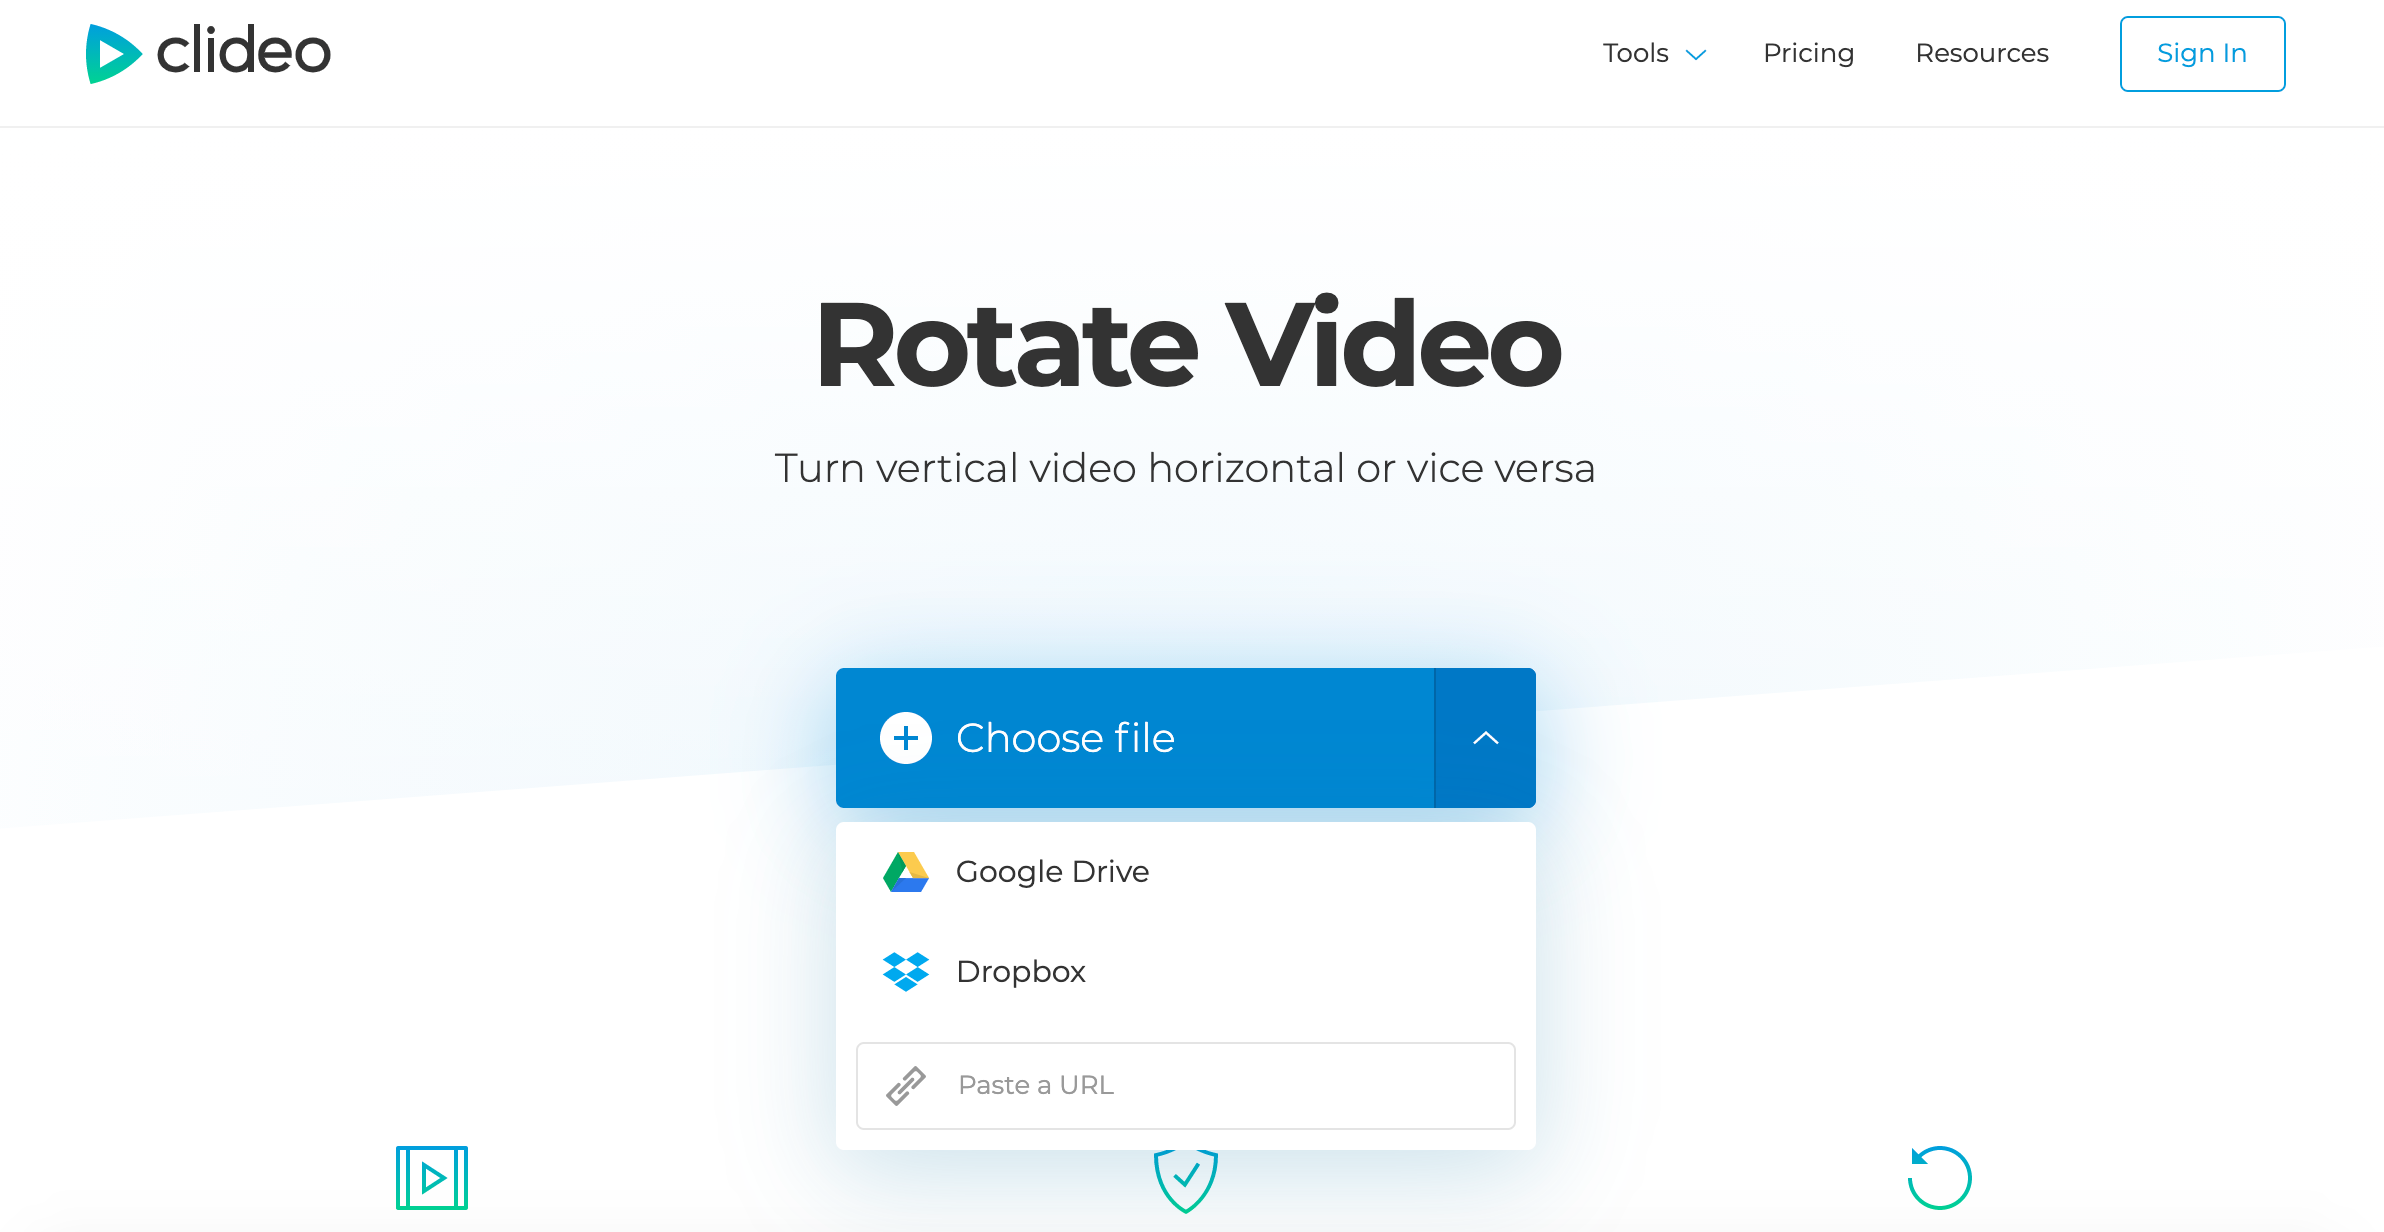 Upload a video to rotate with Clideo